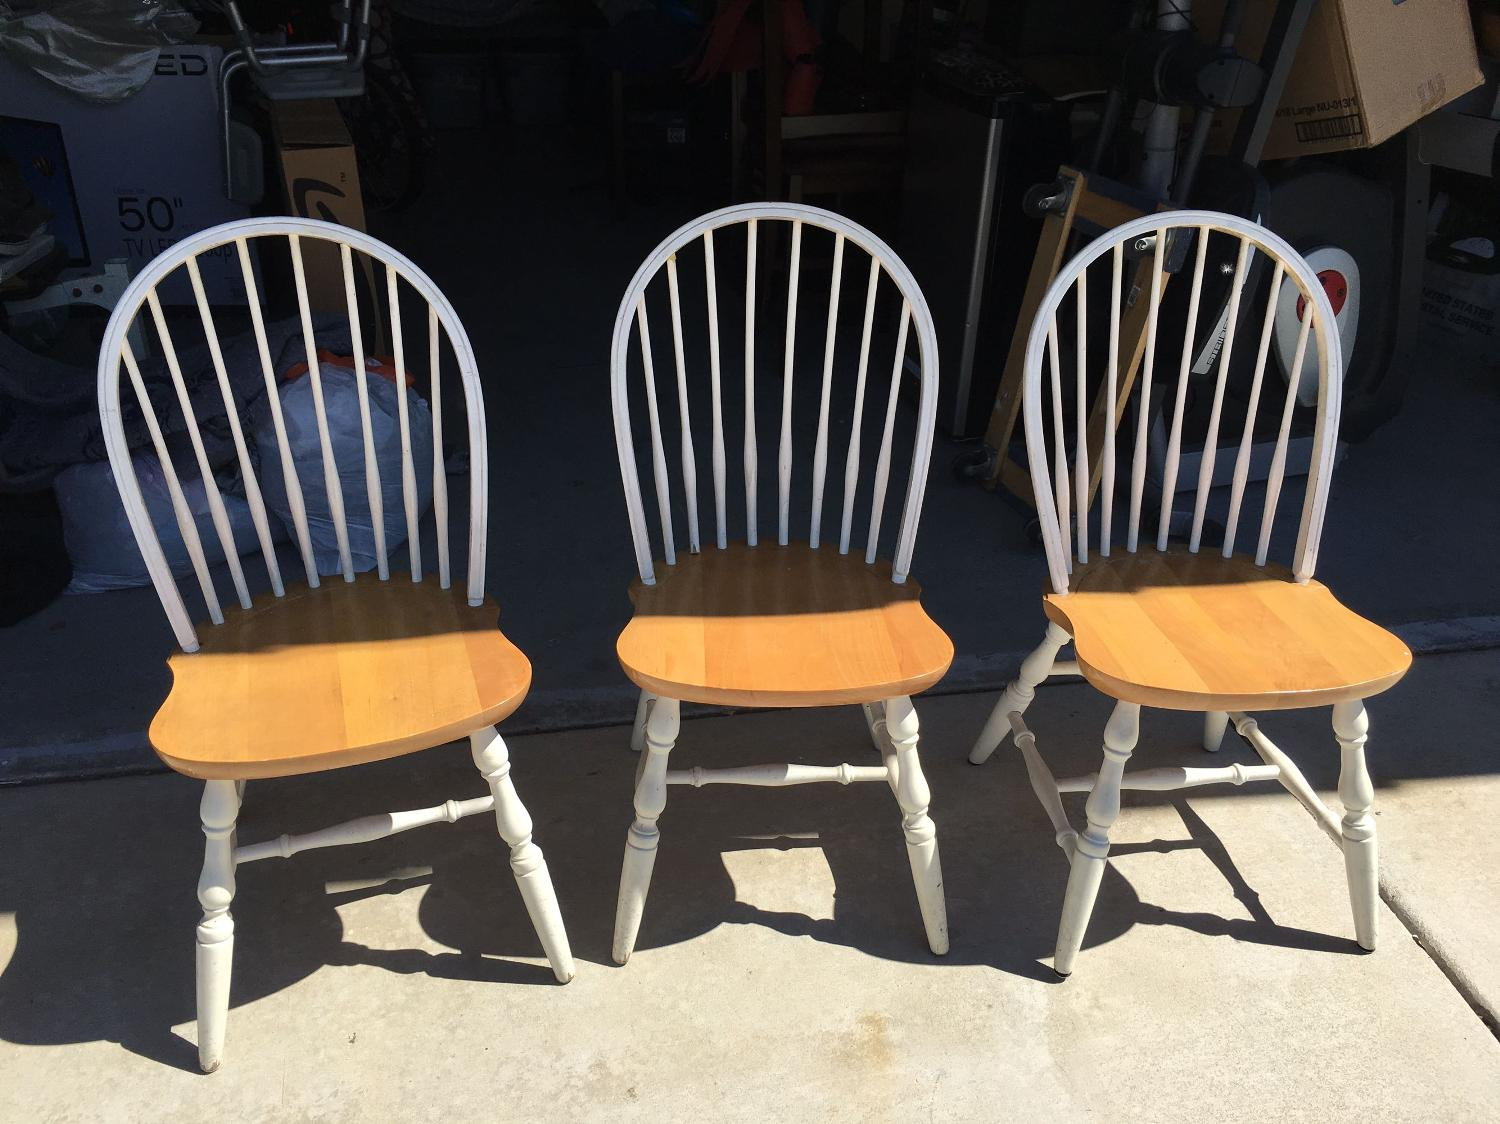 Find More 3 Chairs For Sale At Up To 90 Off Menifee CA